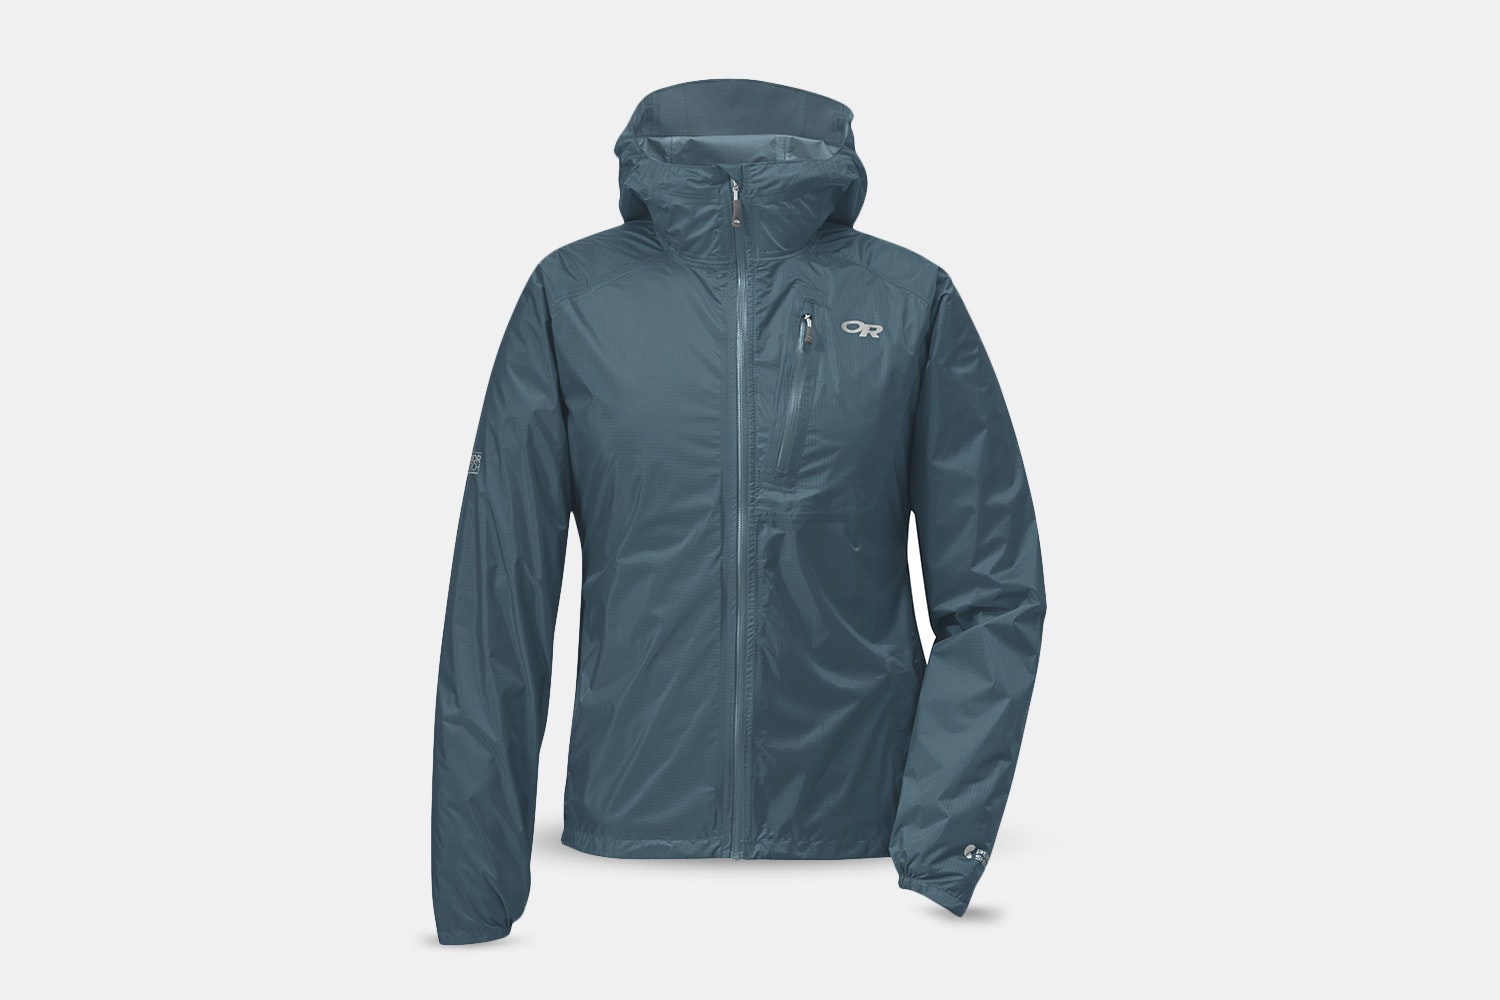 Women's – Washed Peacock